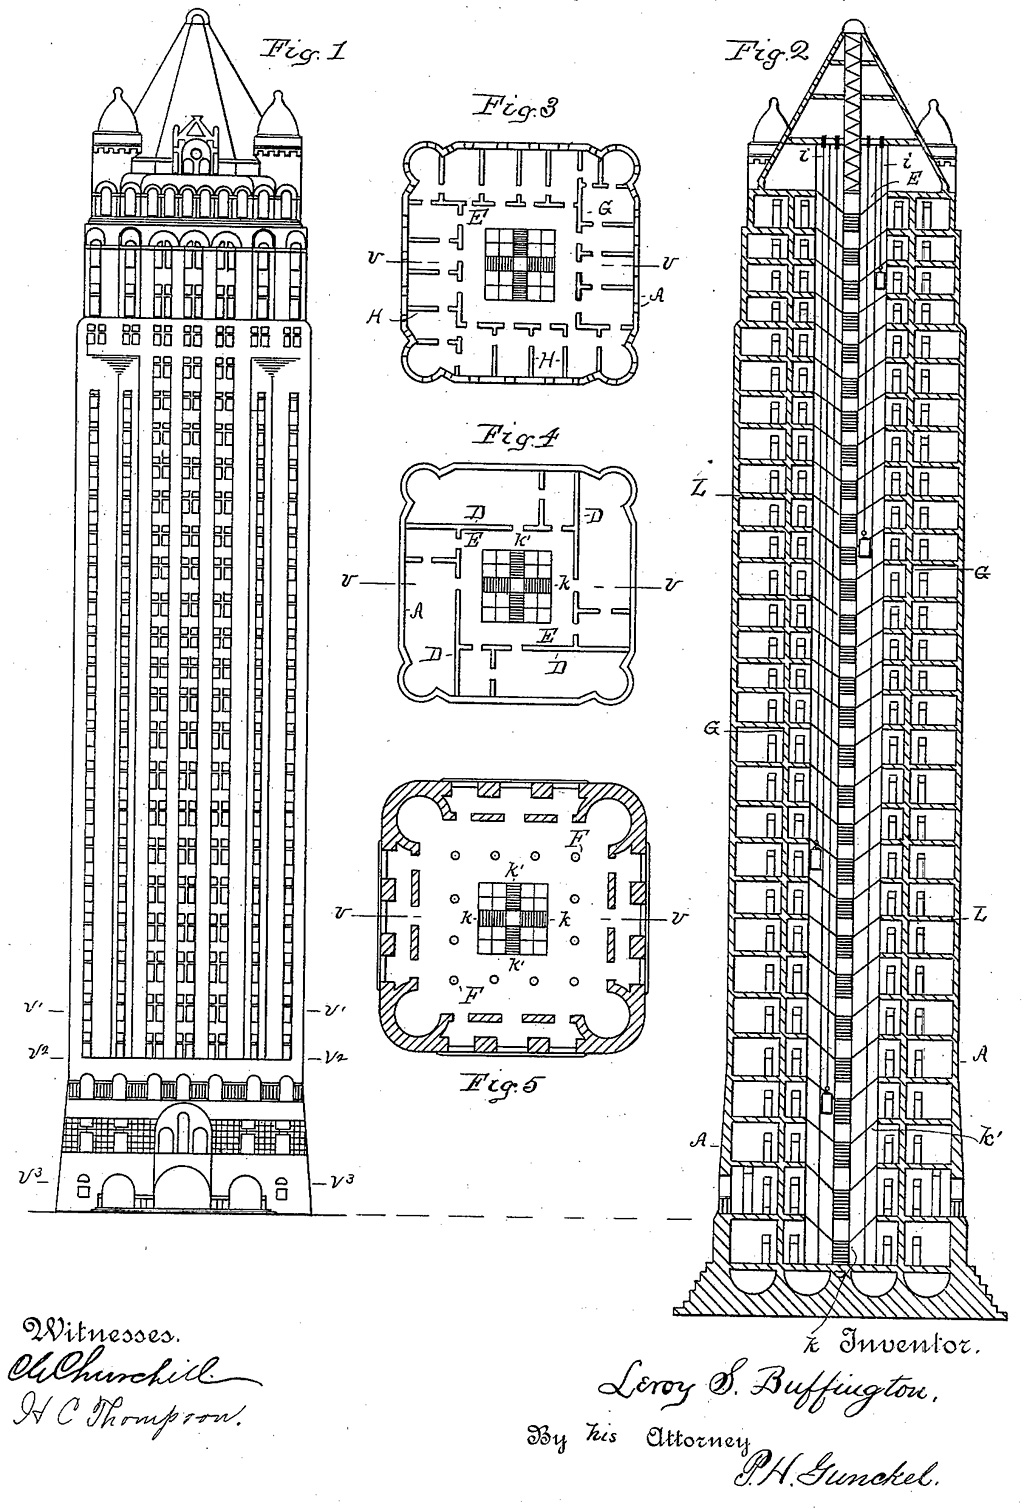 Leroy Buffington skyscraper: 1888